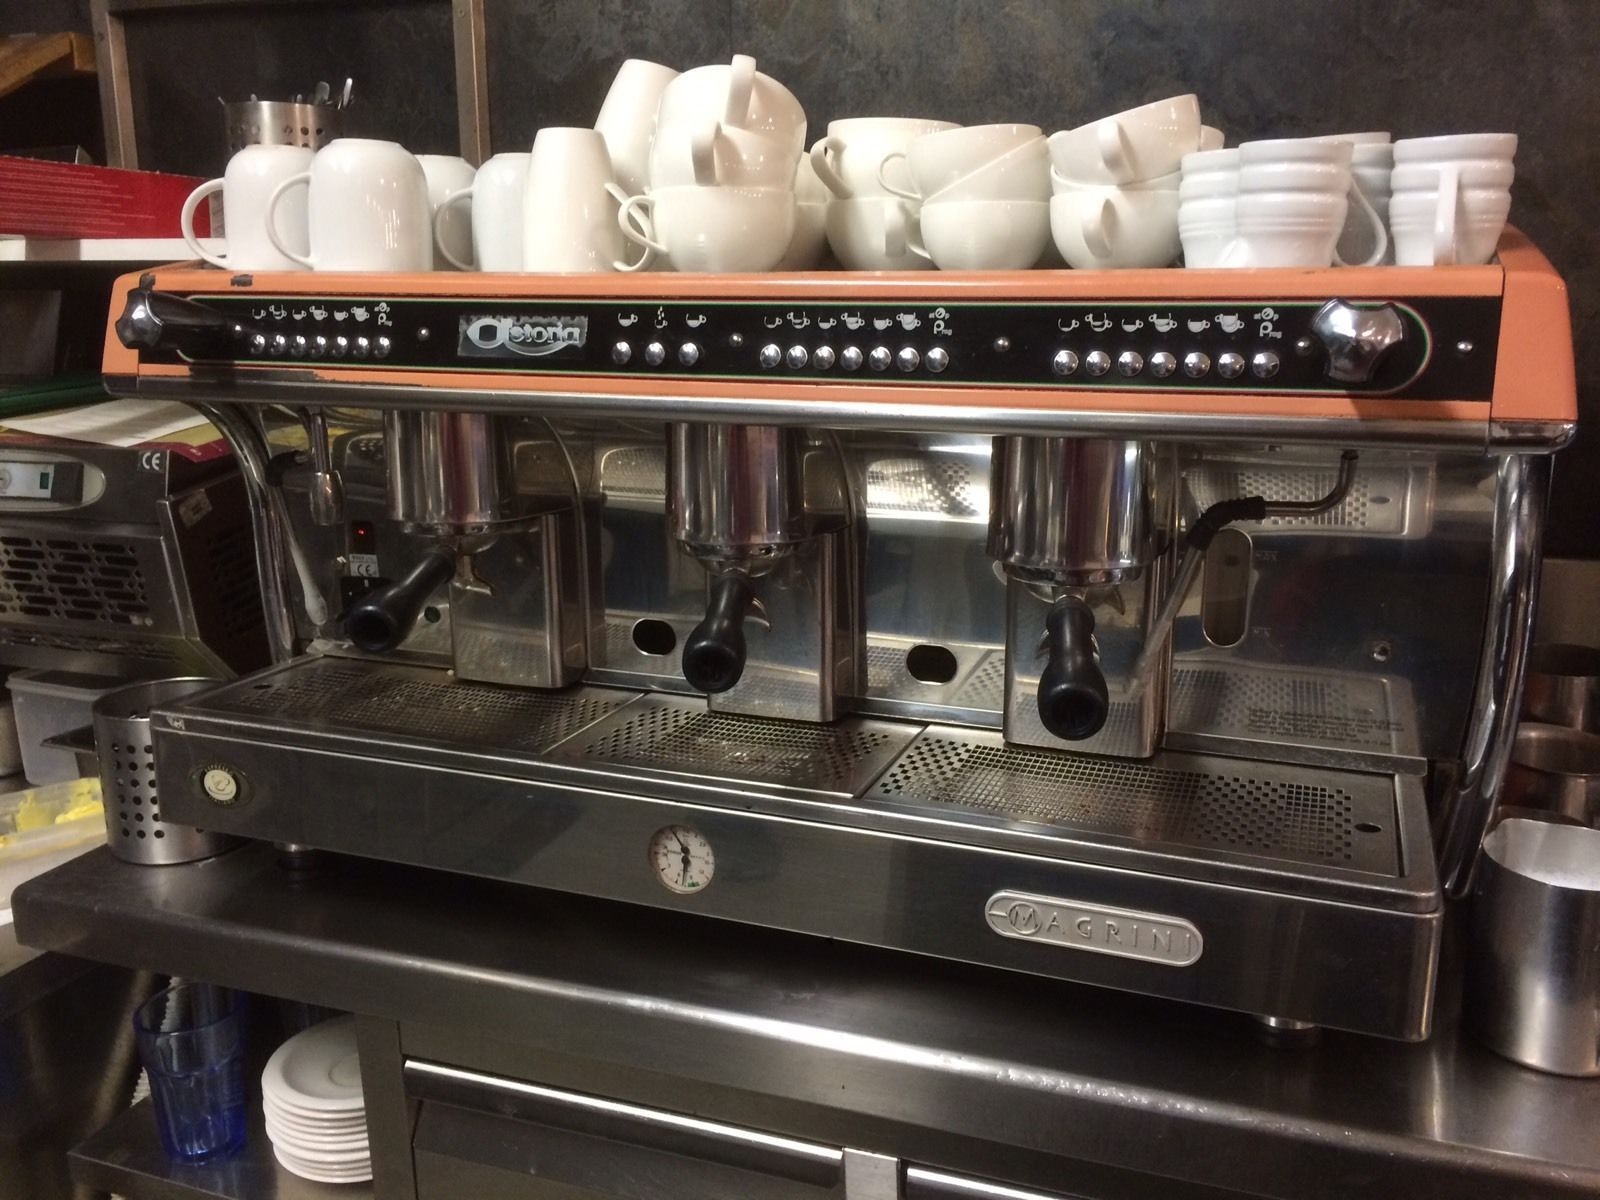 Astoria Magrini Espresso Coffee Machine 3 Group In